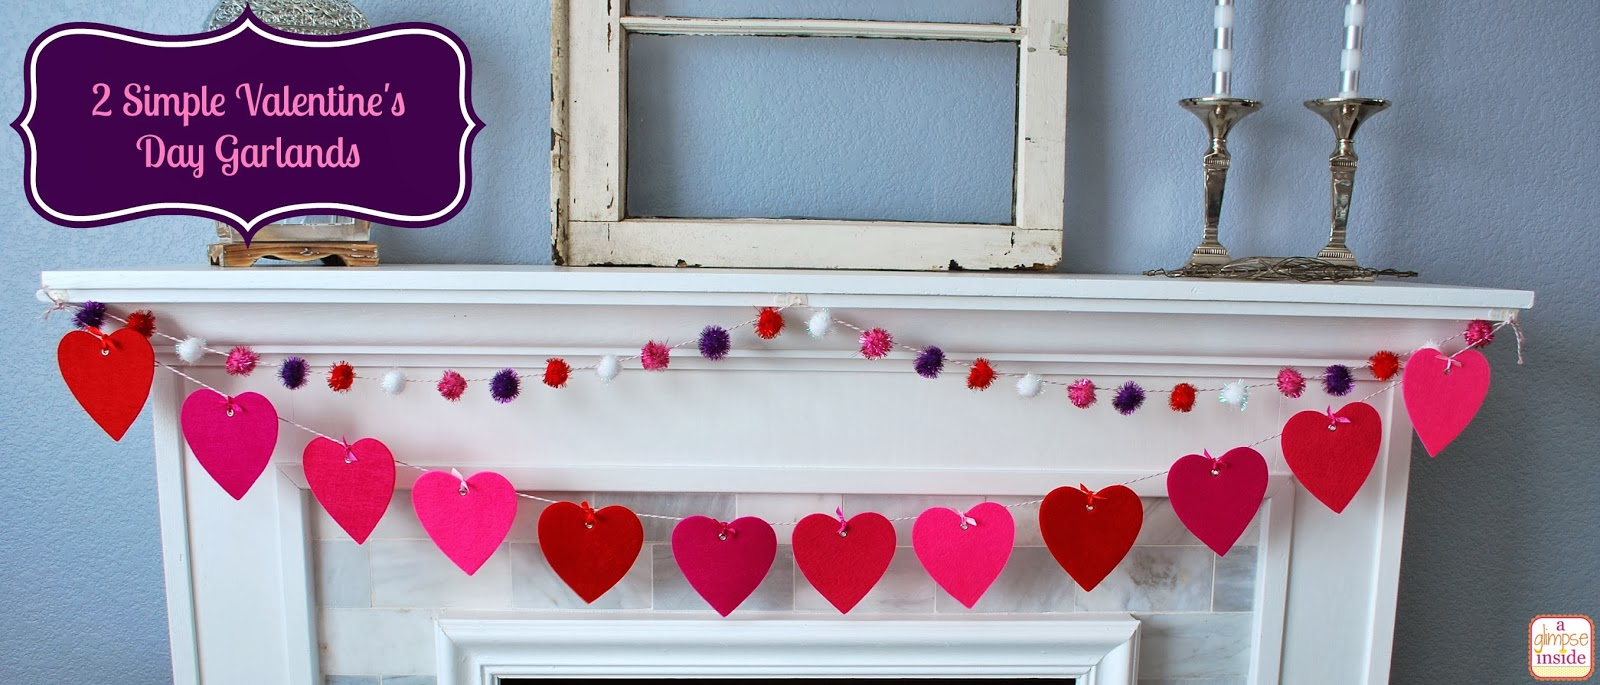 http://www.aglimpseinsideblog.com/2014/01/two-simple-valentines-day-garlands.html